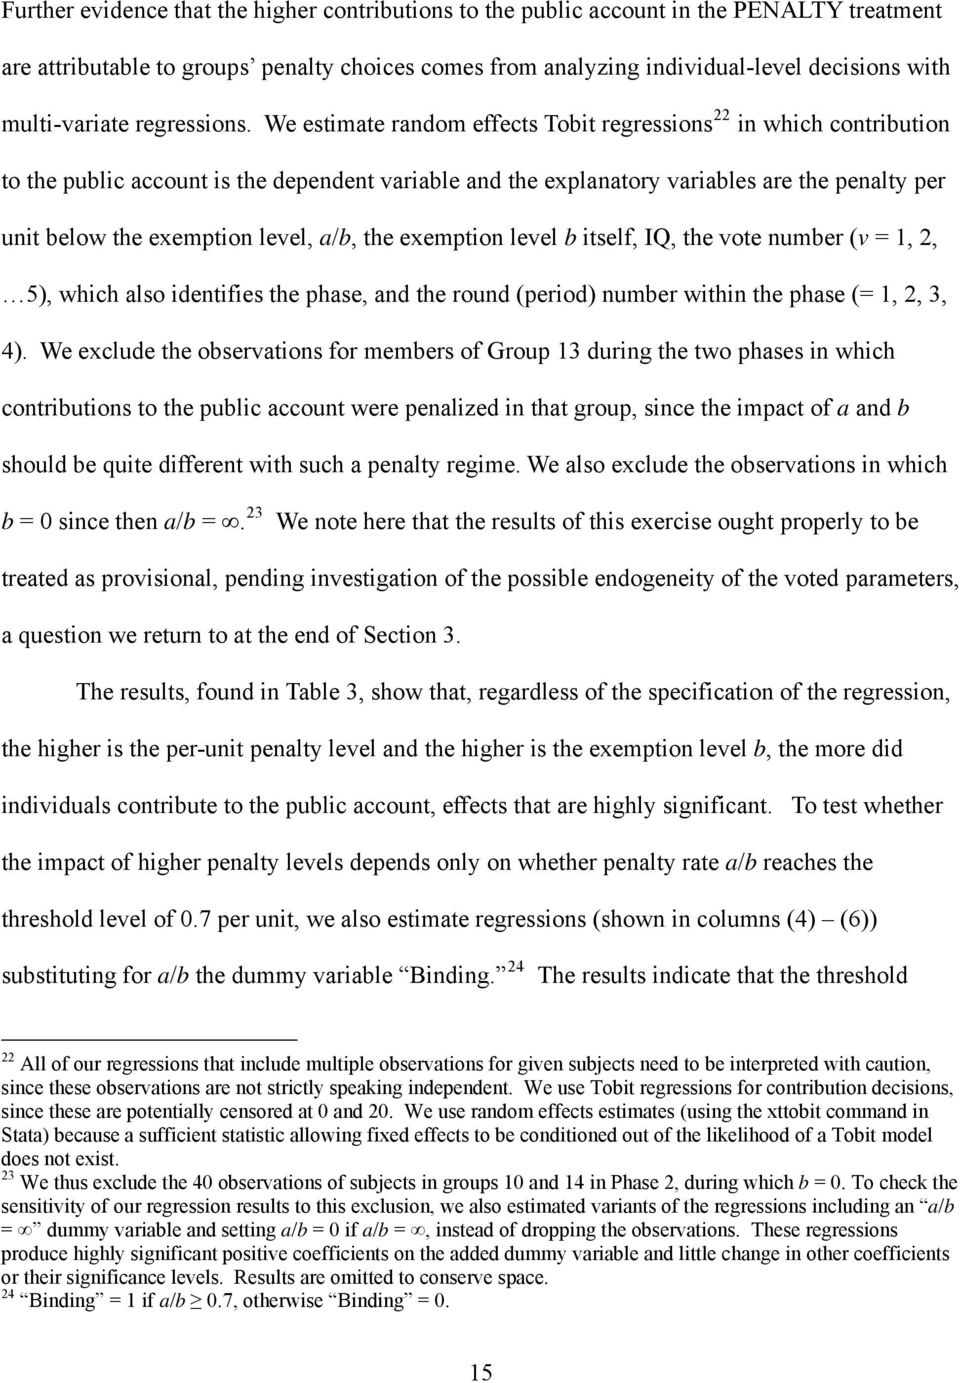 We estimate random effects Tobit regressions 22 in which contribution to the public account is the dependent variable and the explanatory variables are the penalty per unit below the exemption level,